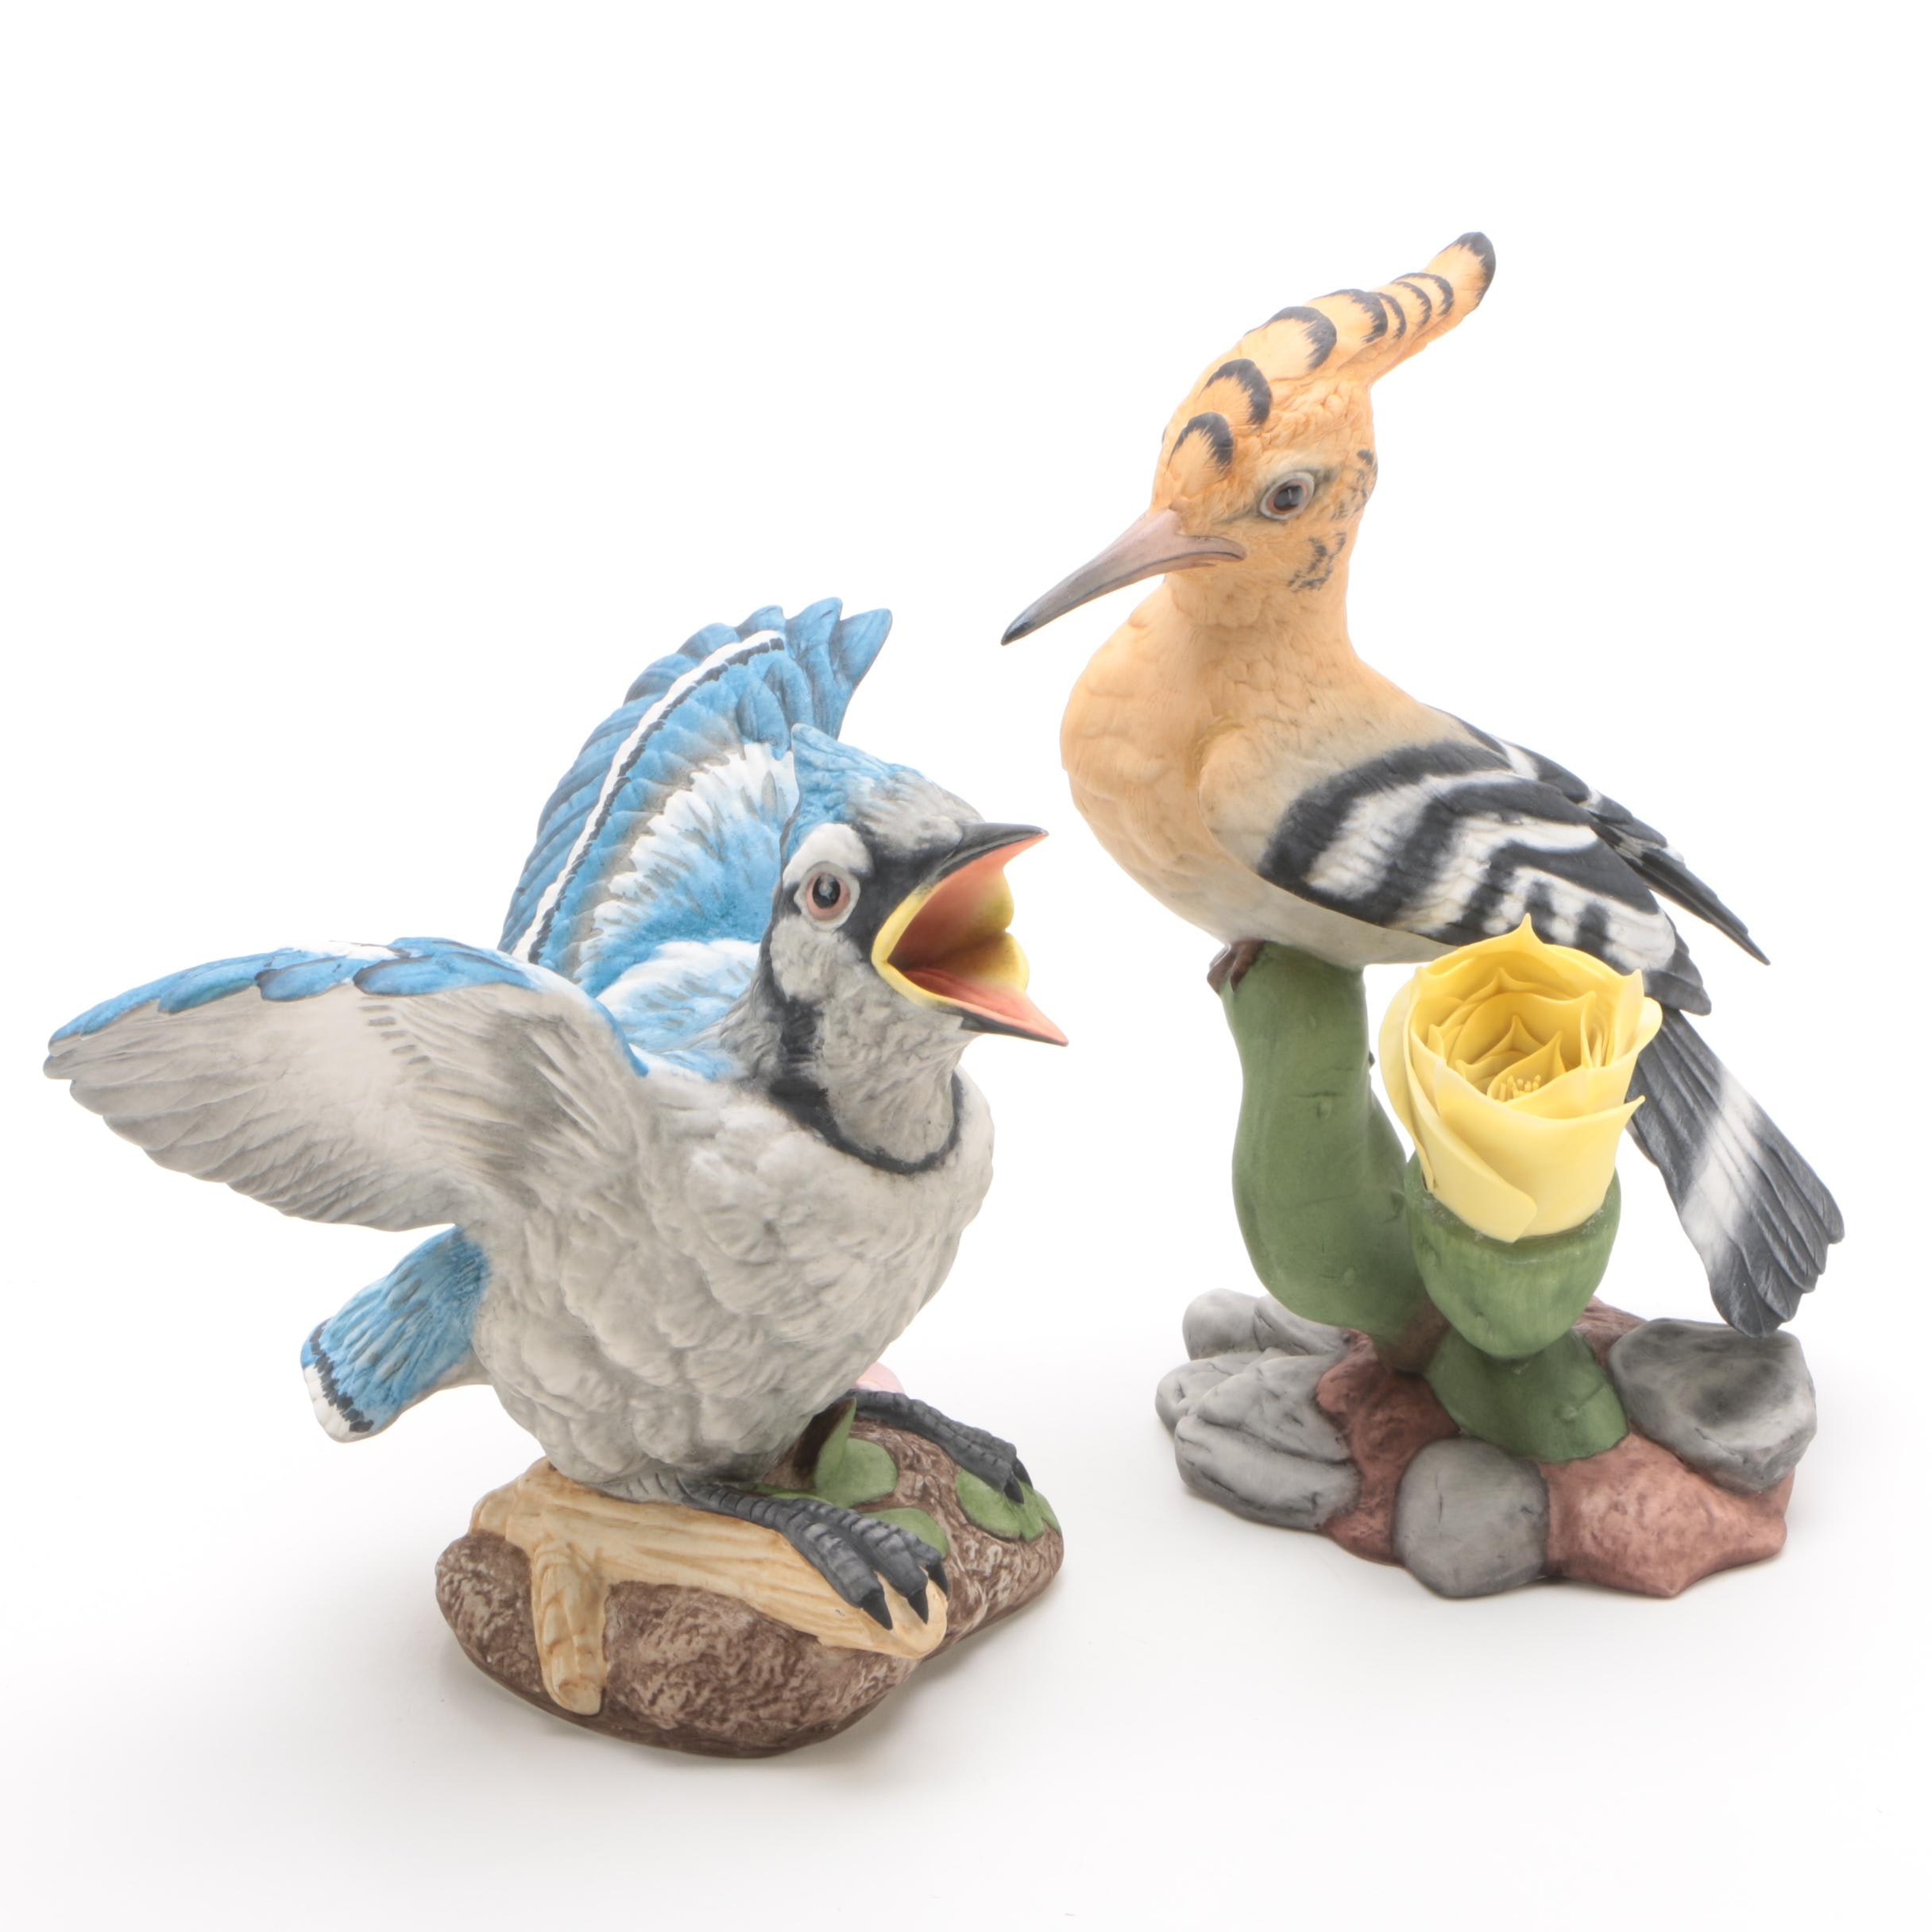 "Boehm Porcelain Figurines""Fledgling Hoopoe"" and ""Blue Jay Fledgling"""